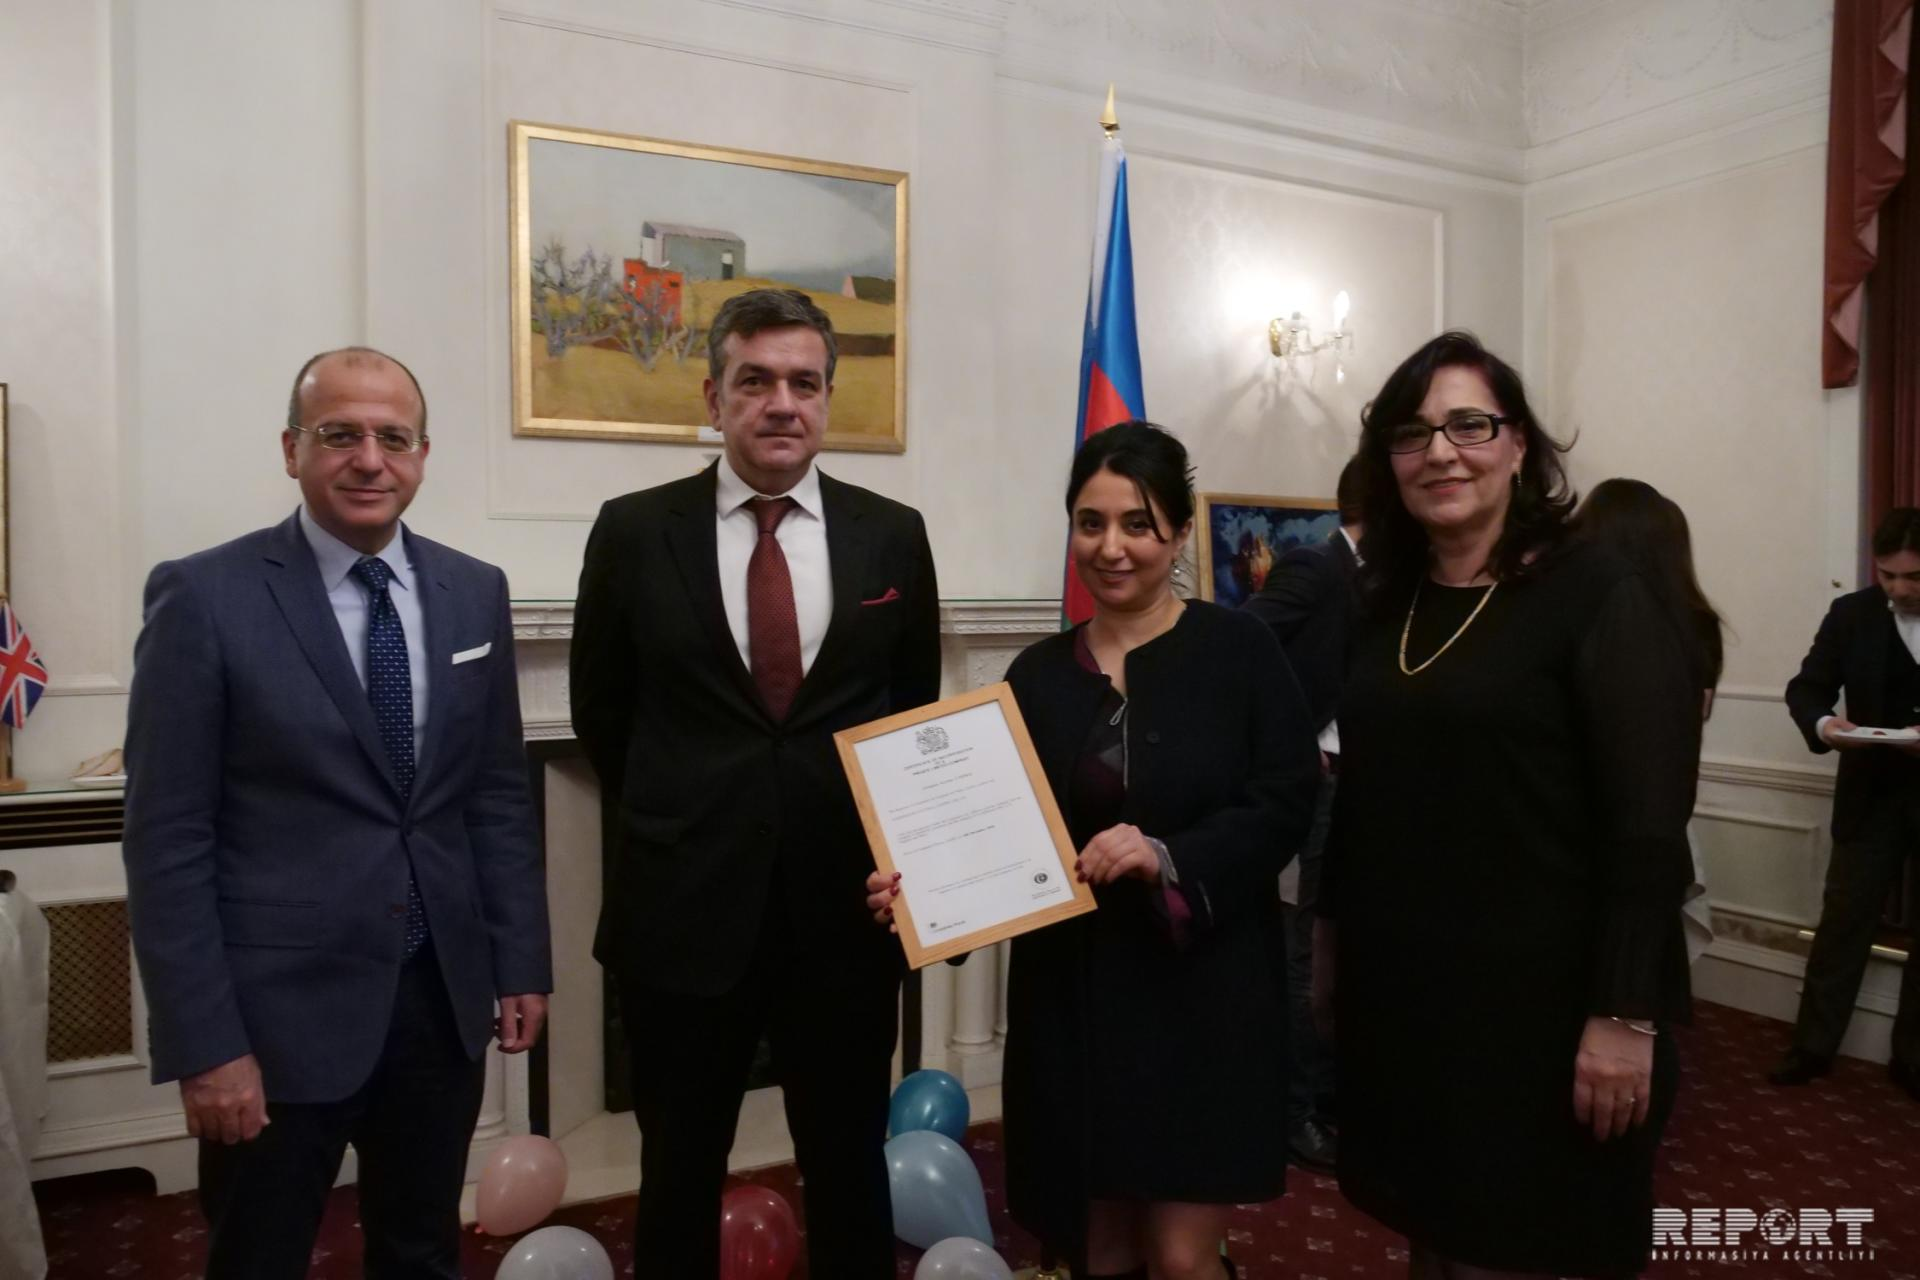 Azerbaijani Cultural Center established -